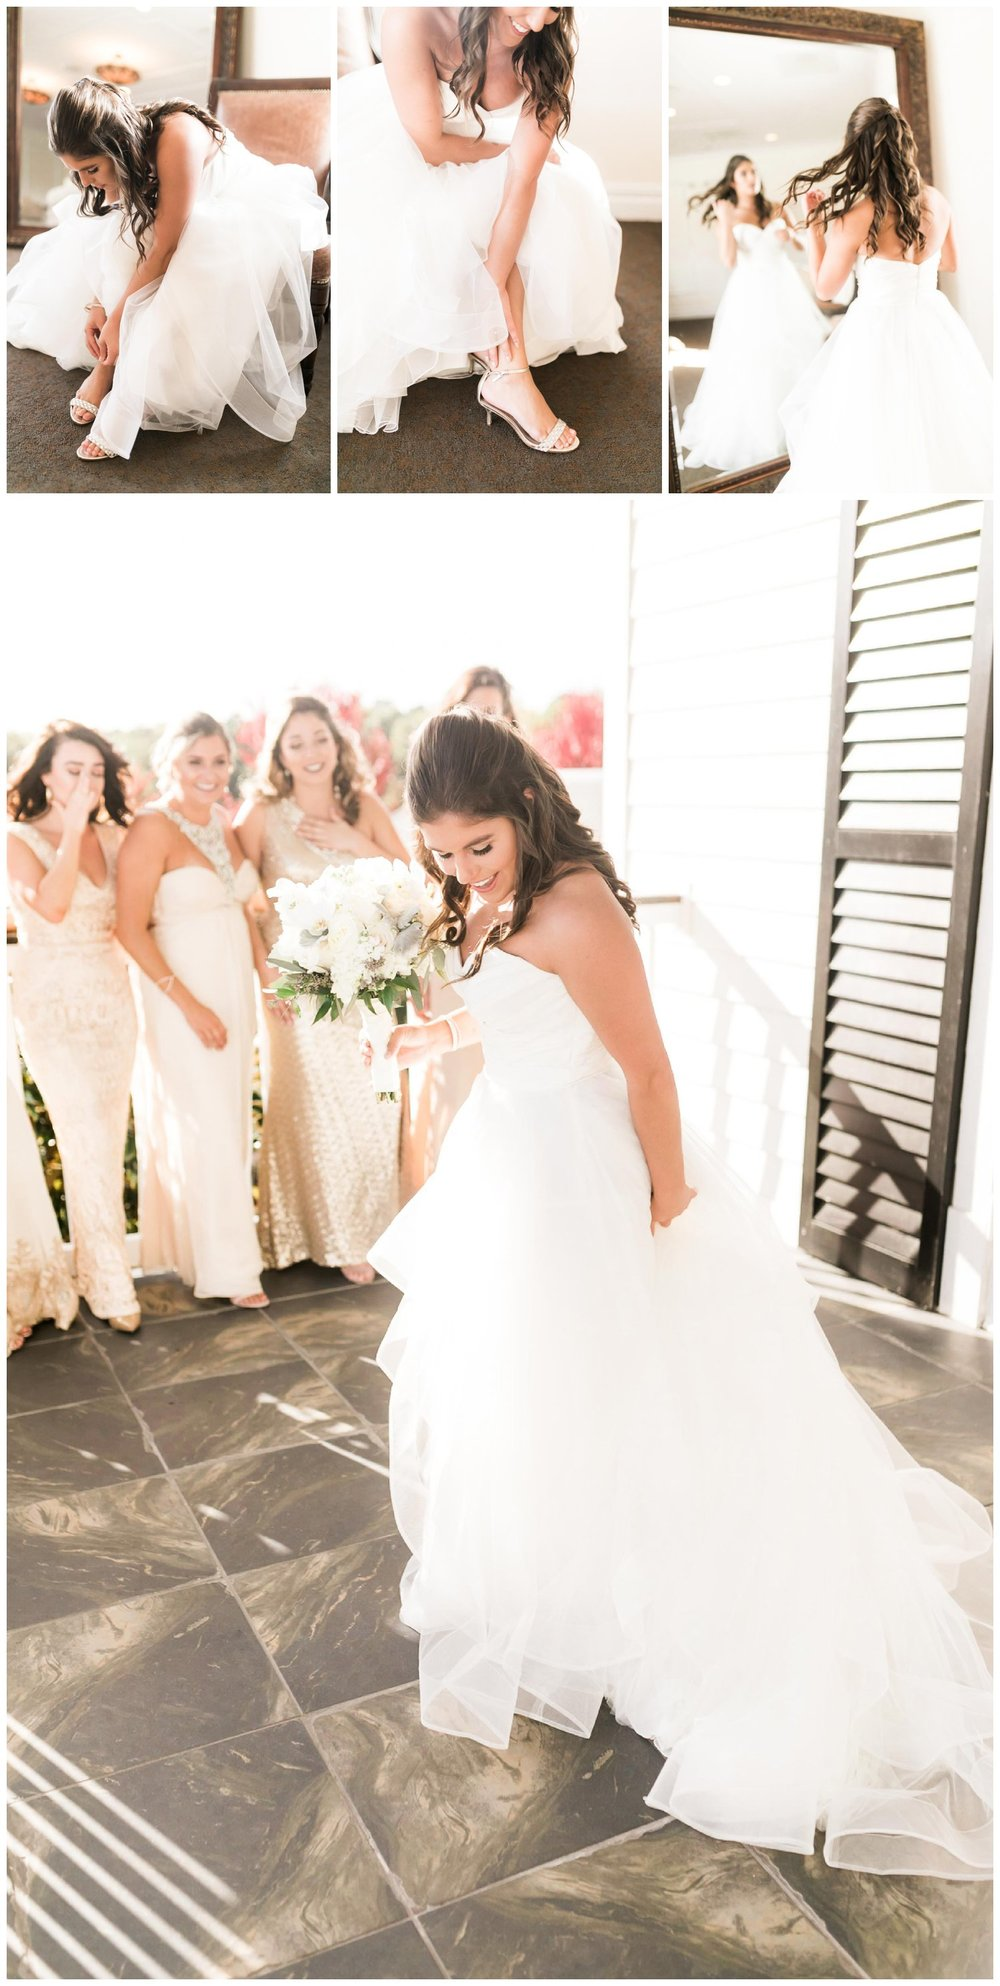 JenandEd_NewJerseyWedding_CarriageHouse_Galloway_NJ__SouthJersey_Wedding_Photographer_MagdalenaStudios_0252.jpg